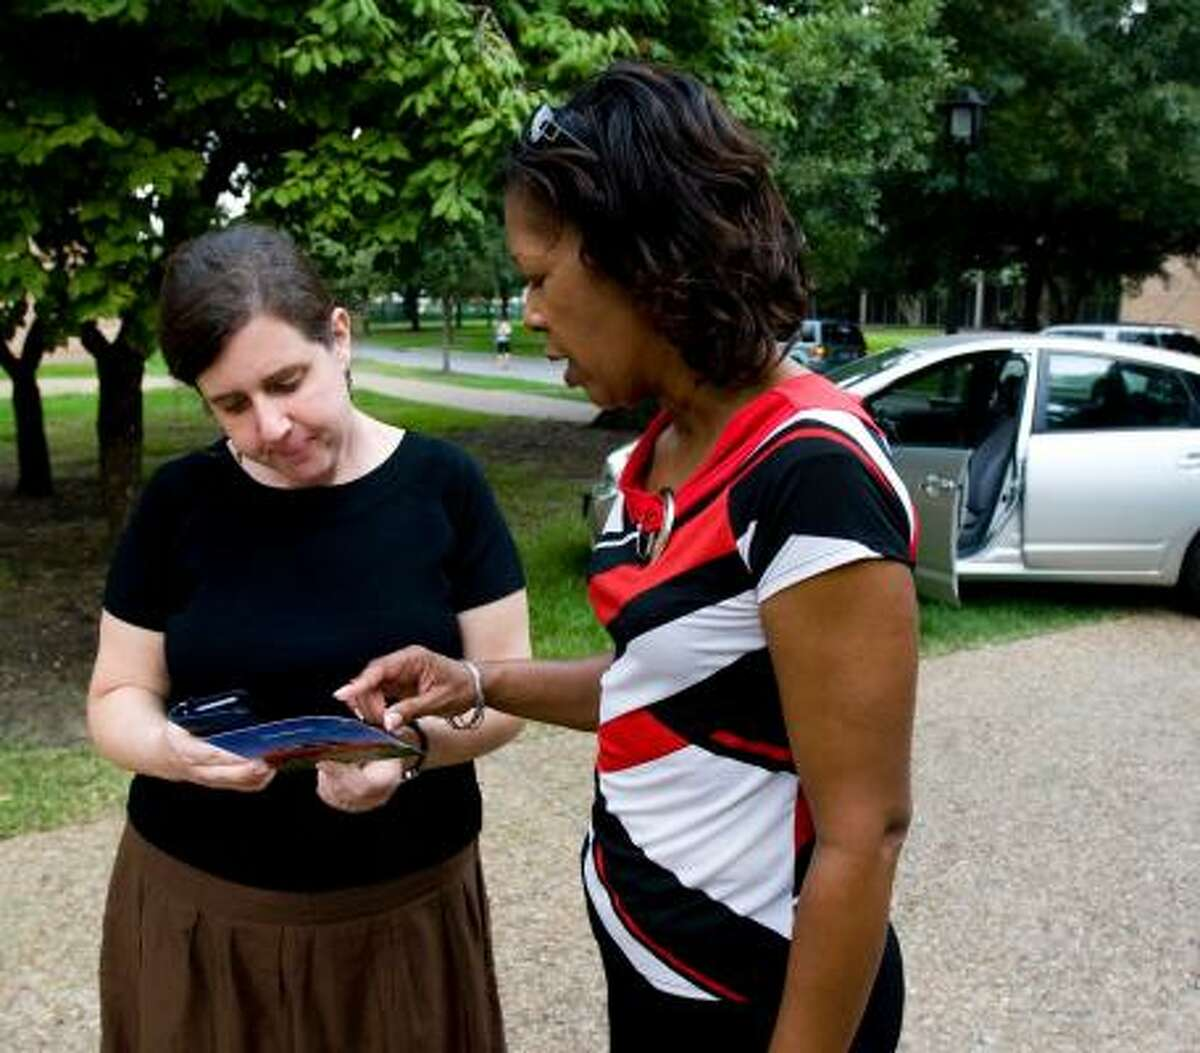 Cynthia Booker, right, explains the Zipcar program to Lisa Birenbaum of Rice University's department of transportation and parking. Zipcar made its Texas debut on Tuesday.